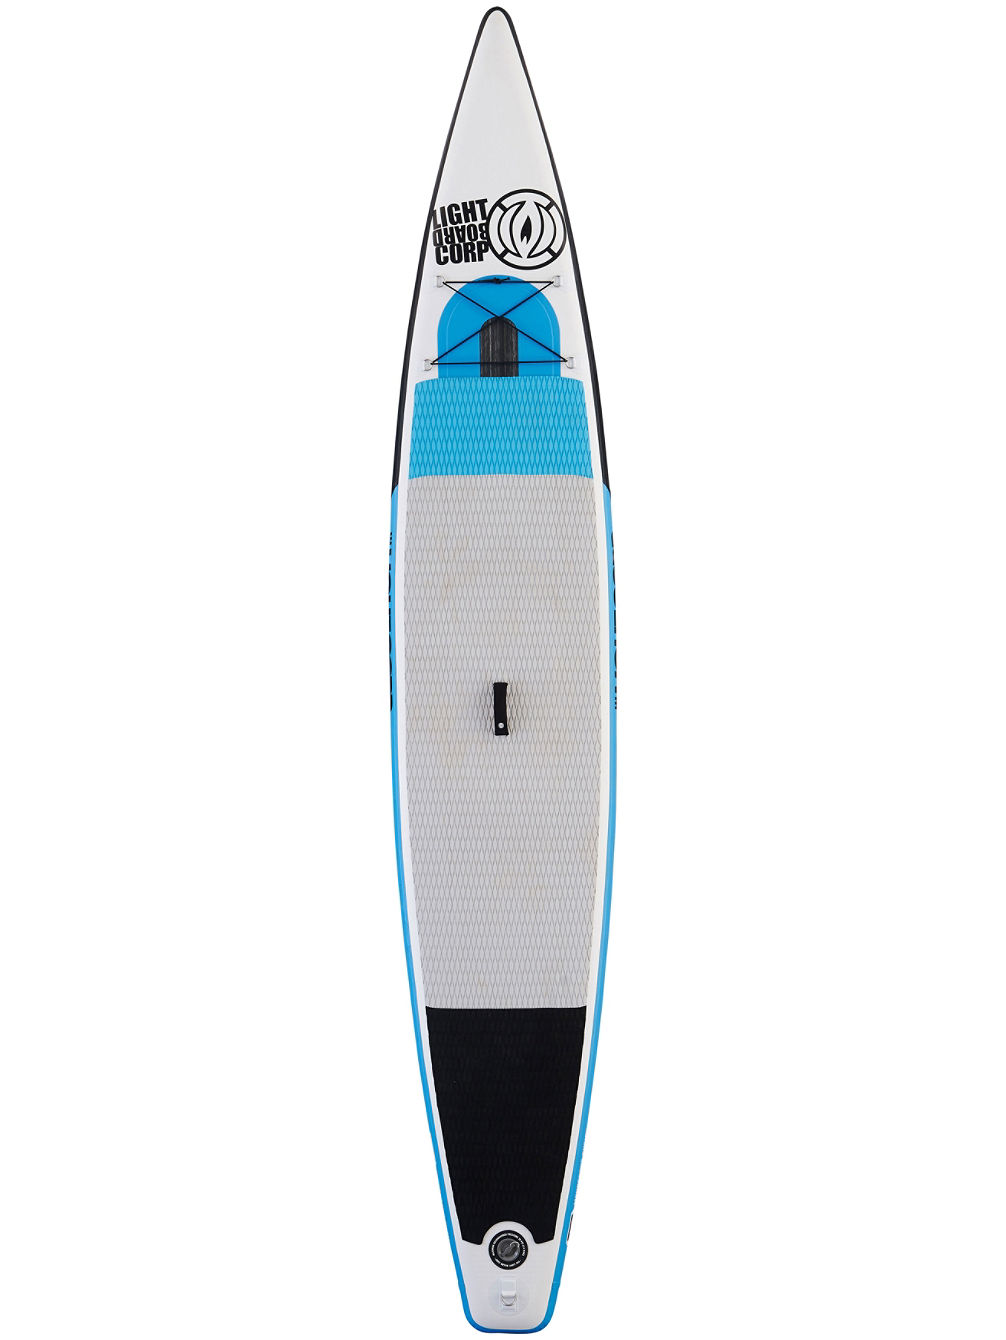 IC Series 14.0 x 28.5 SUP Board